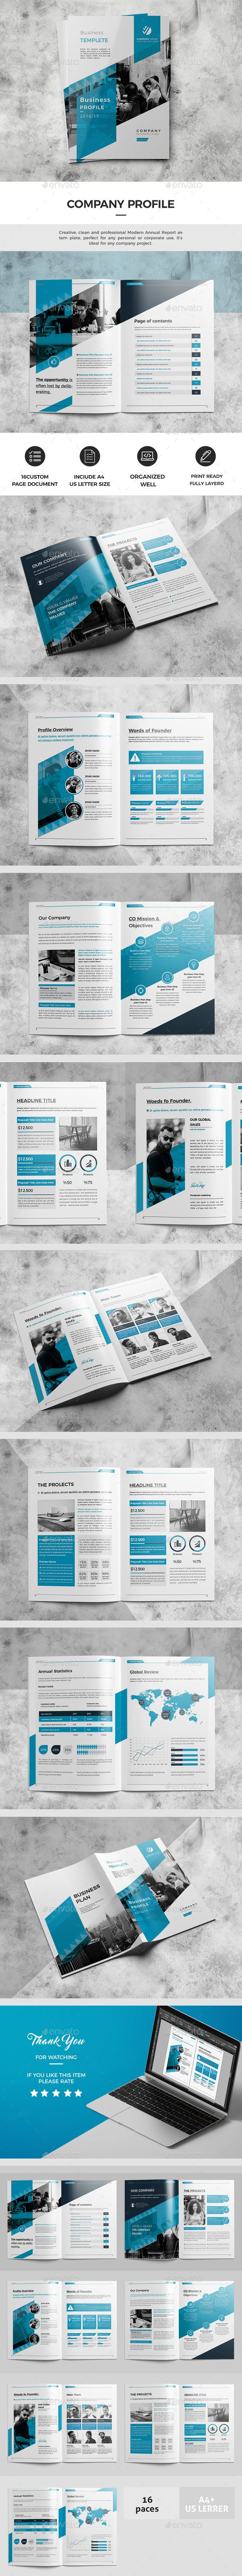 Corporate Business Plan Design Template  Catalogs Brochures